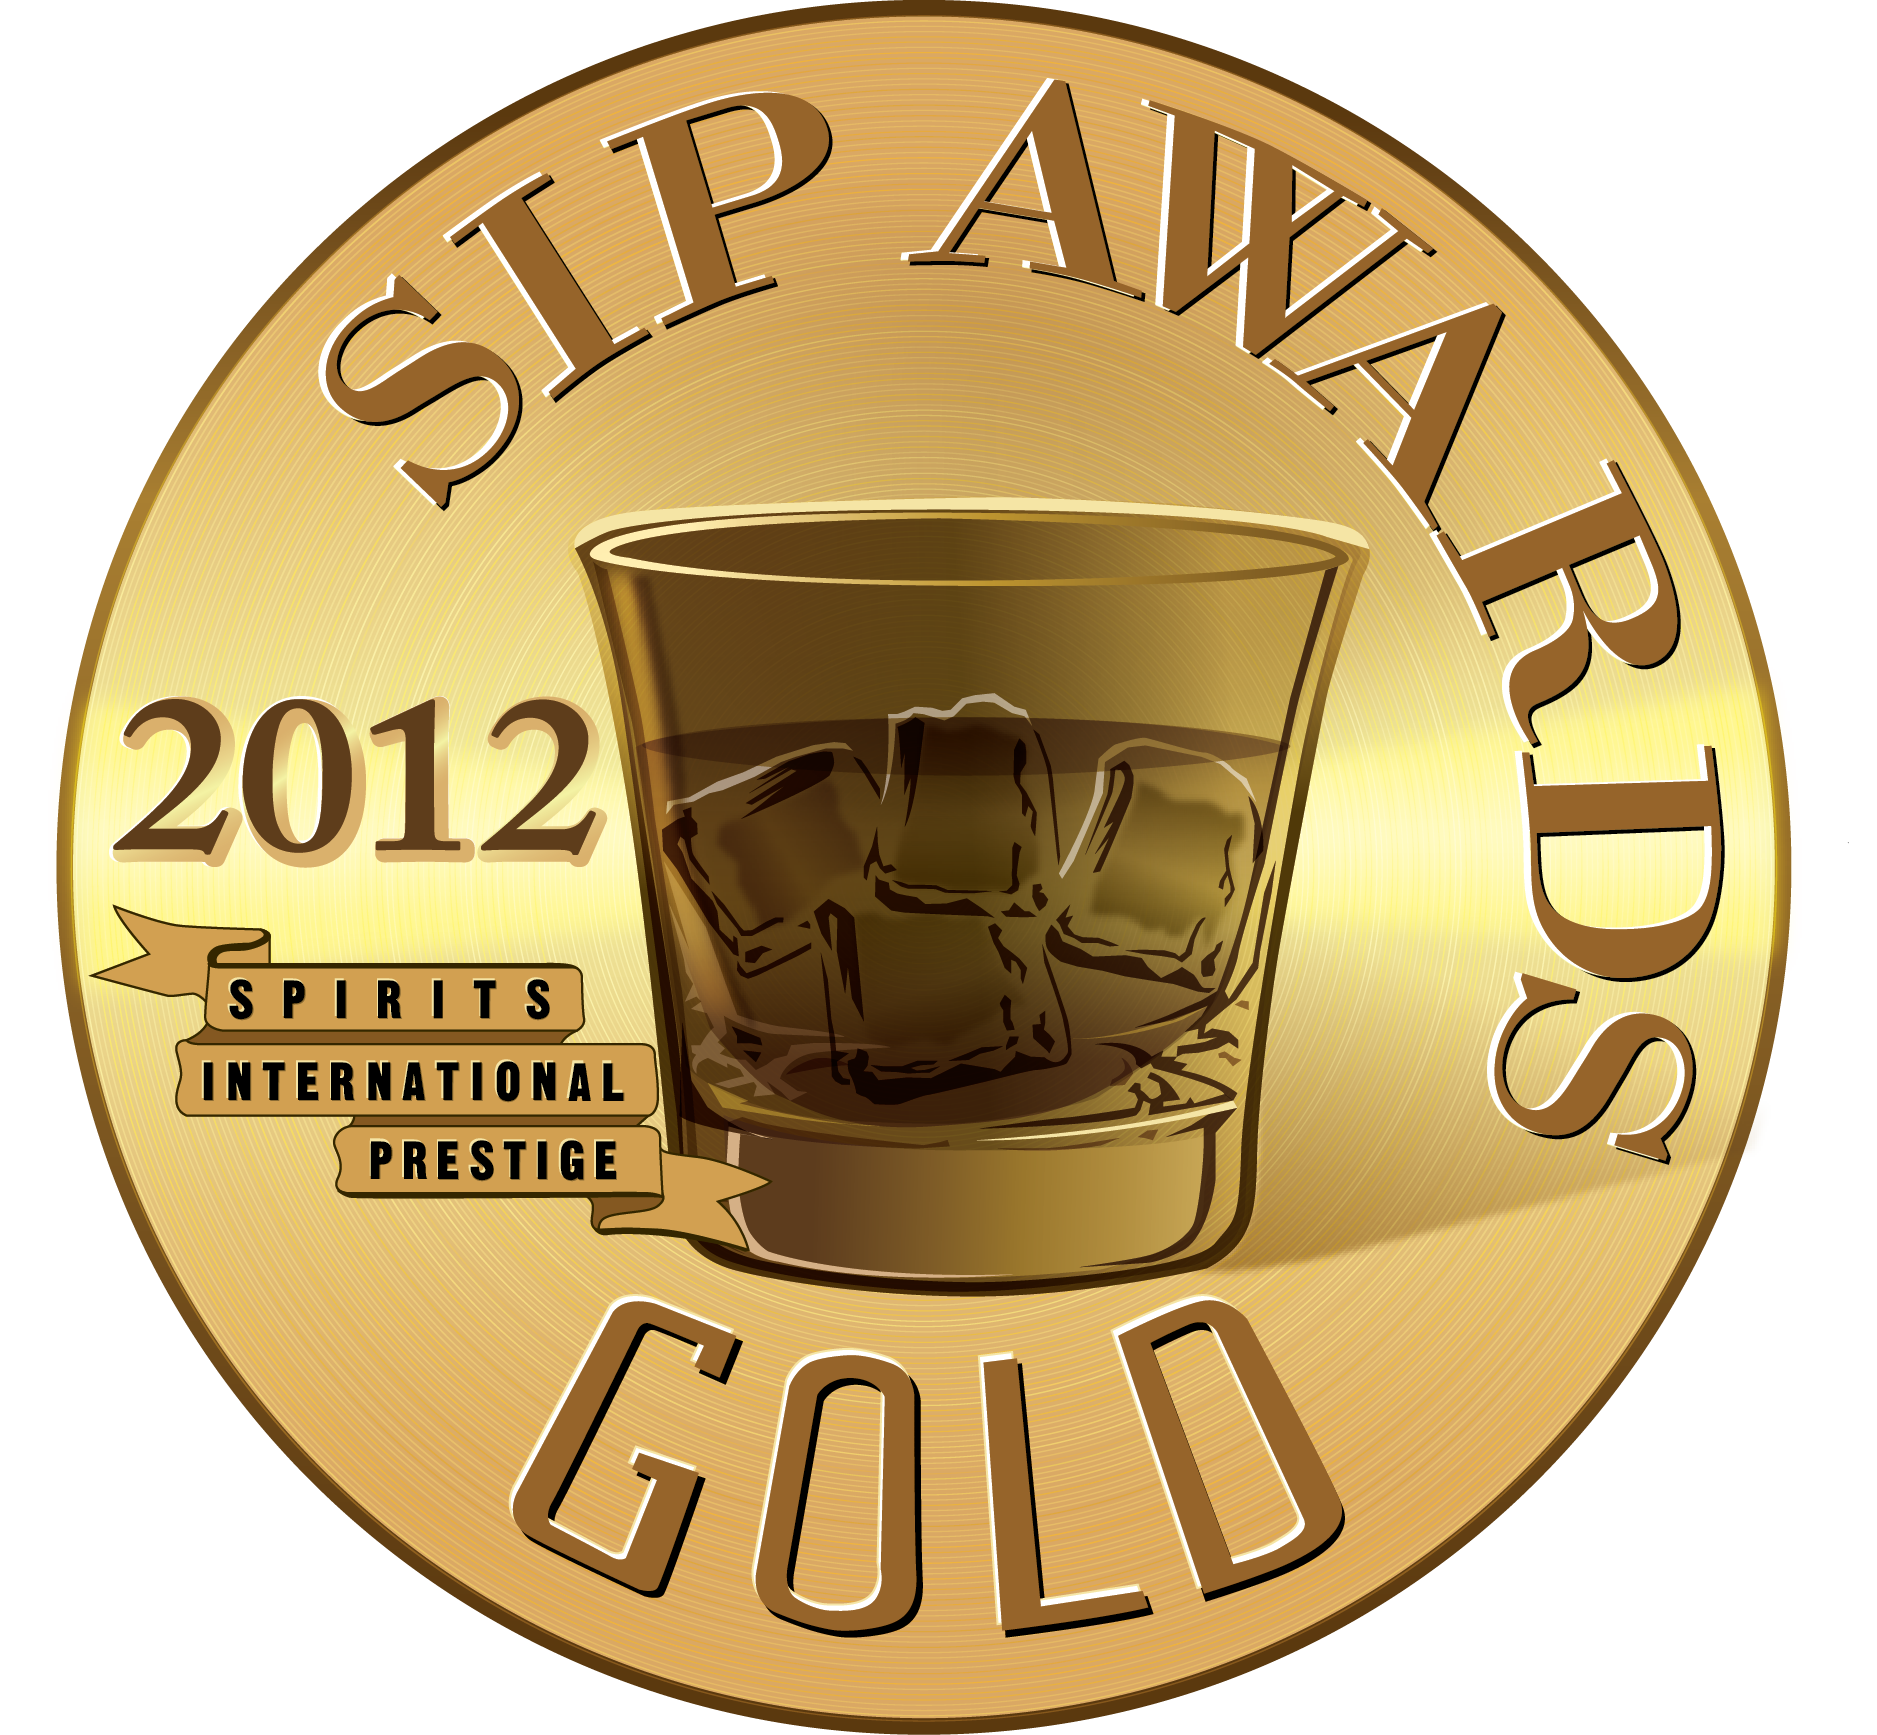 The Spirits International Prestige (SIP) Awards 2012